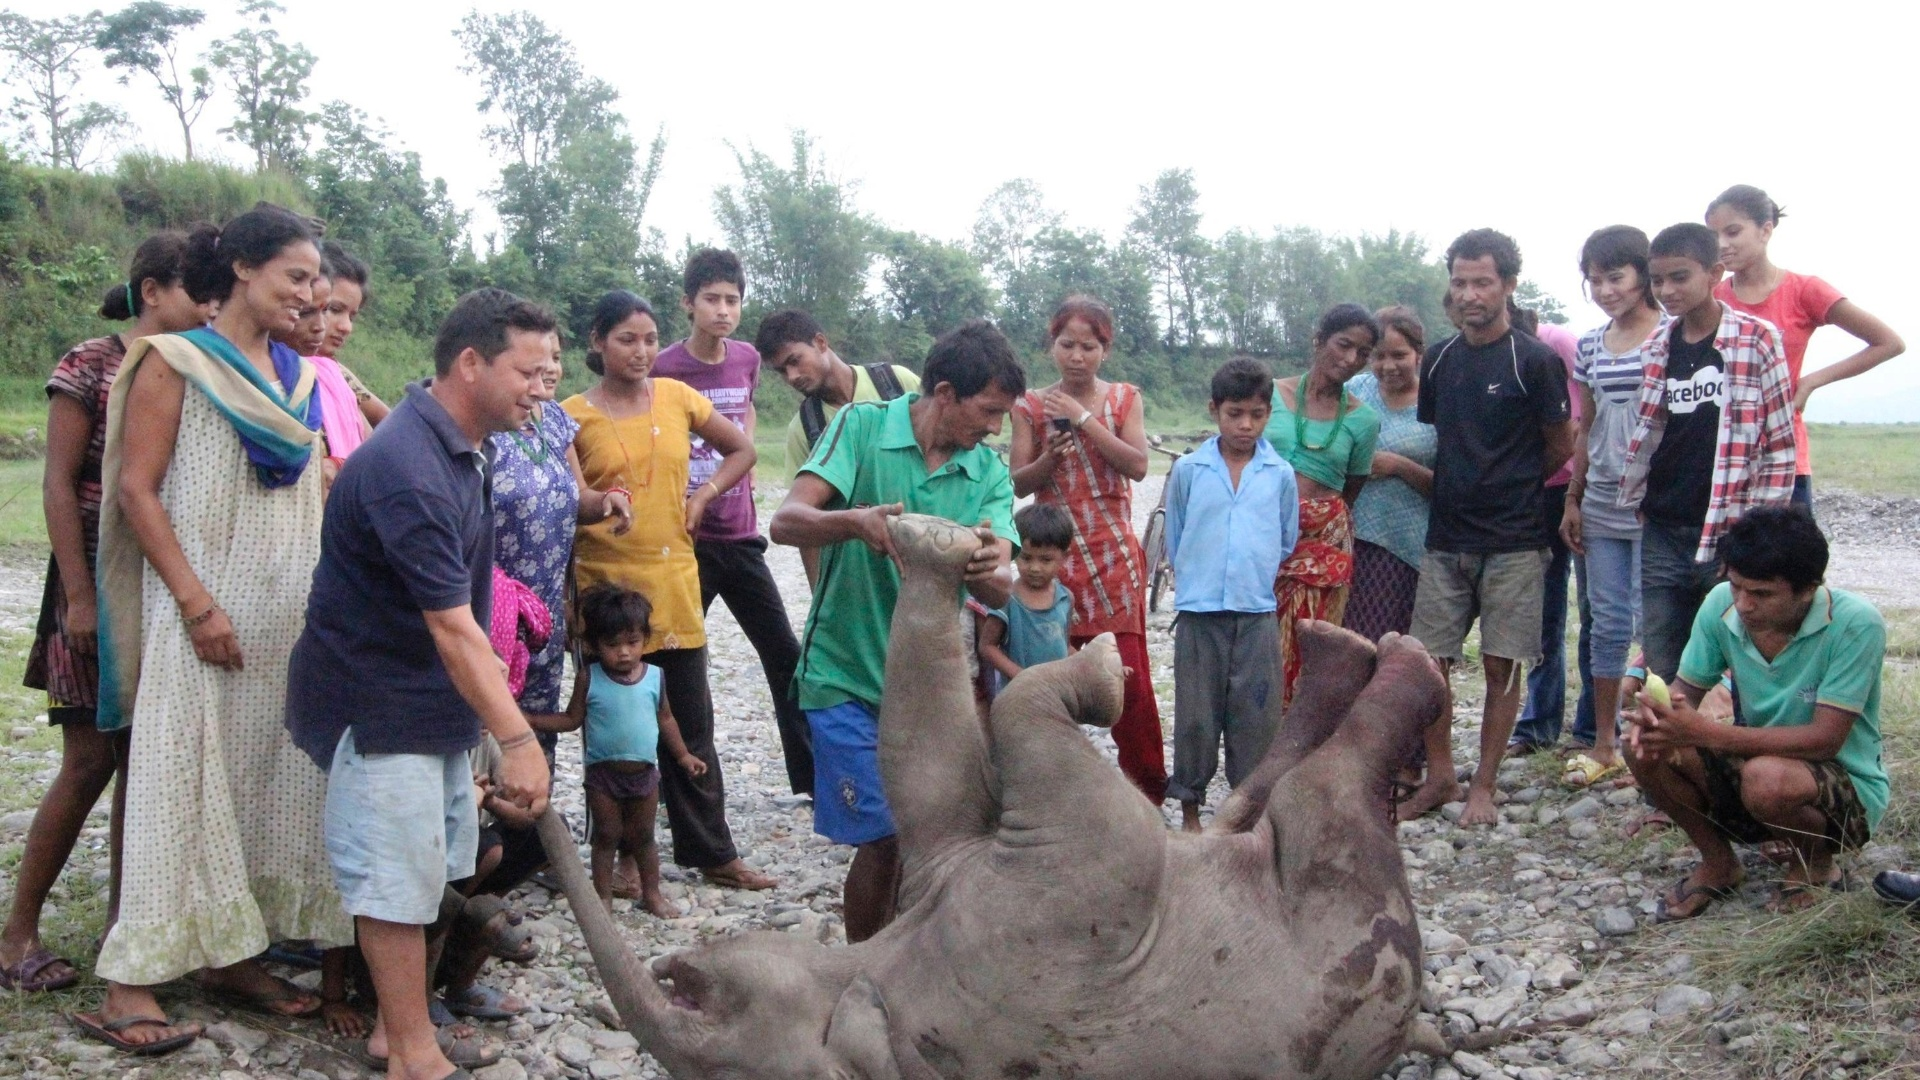 12.jun.2012 - Nepaleses cercam filhote de elefante encontrado morto na manh em Jhapa, no Nepal, devido a uma leso